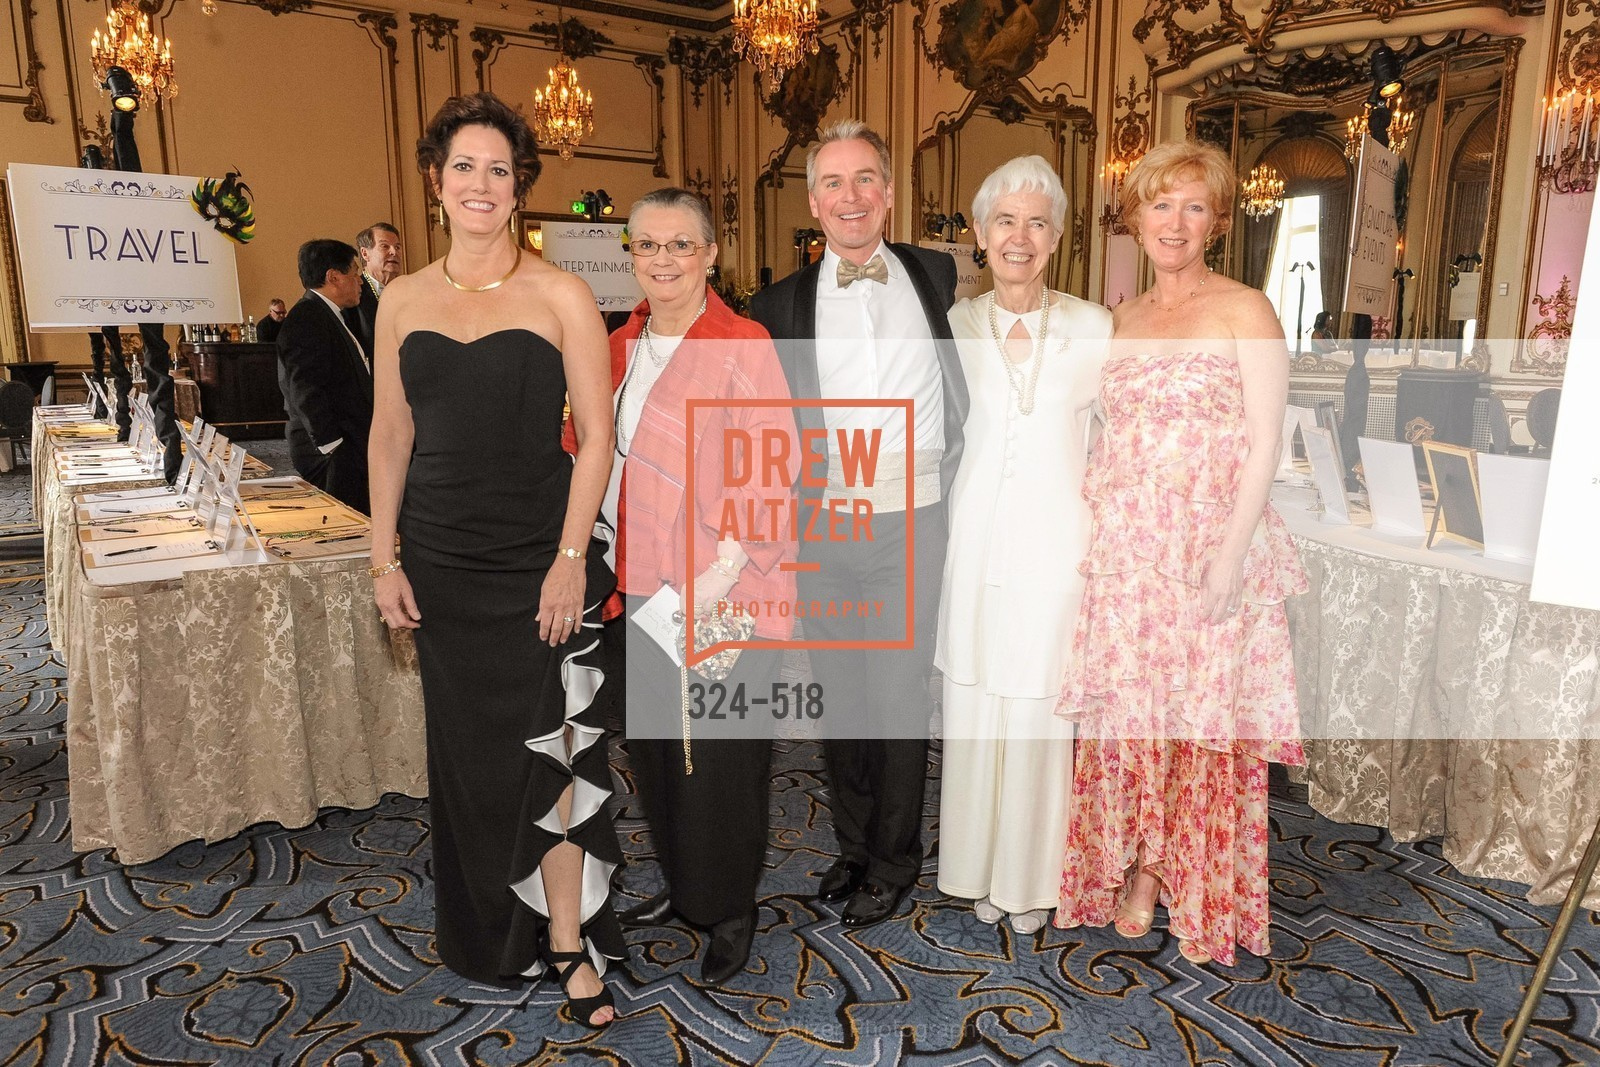 Jean Kellogg, Donna Blacker, Patrick Wilken, Jayne Davis, Carlyn Clause, MEROLA OPERA Spring Benefit 2014:  A Night in New Orleans, US. Fairmont, April 12th, 2014,Drew Altizer, Drew Altizer Photography, full-service agency, private events, San Francisco photographer, photographer california